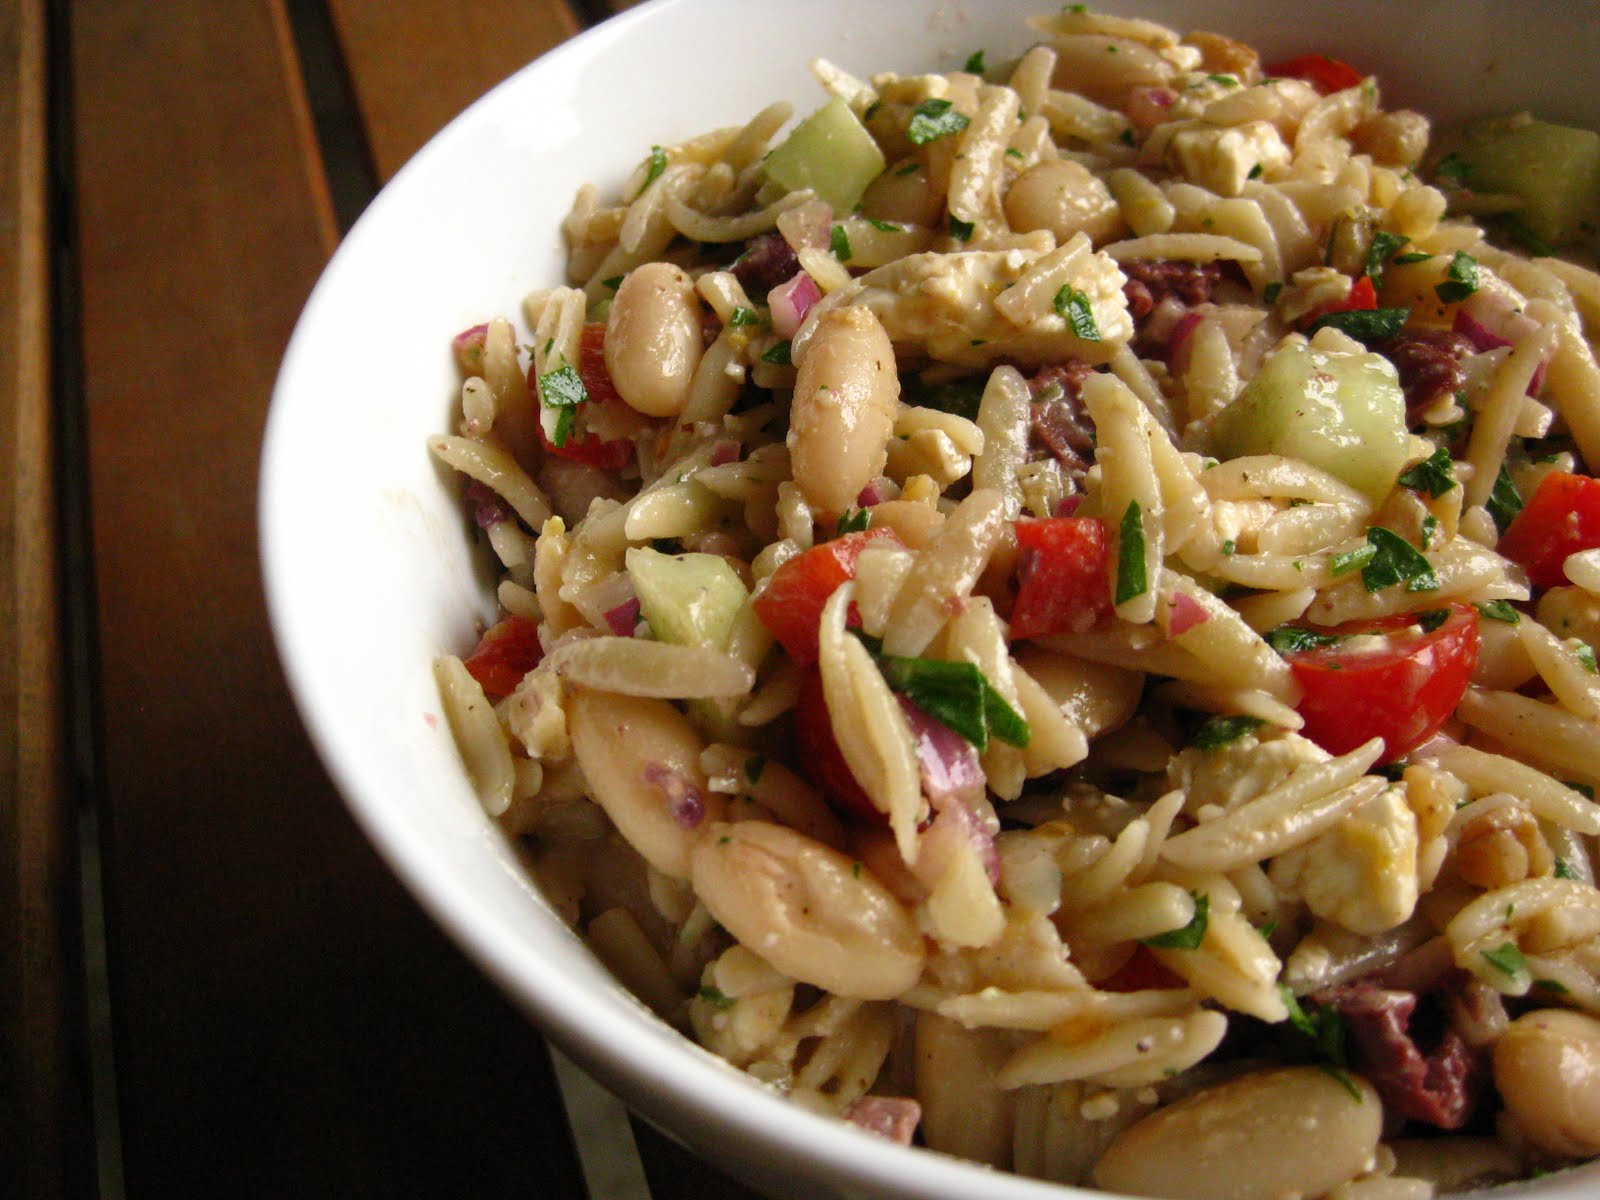 Taste of Home Cooking: Recipe Swap - Mediterranean Grain Salad